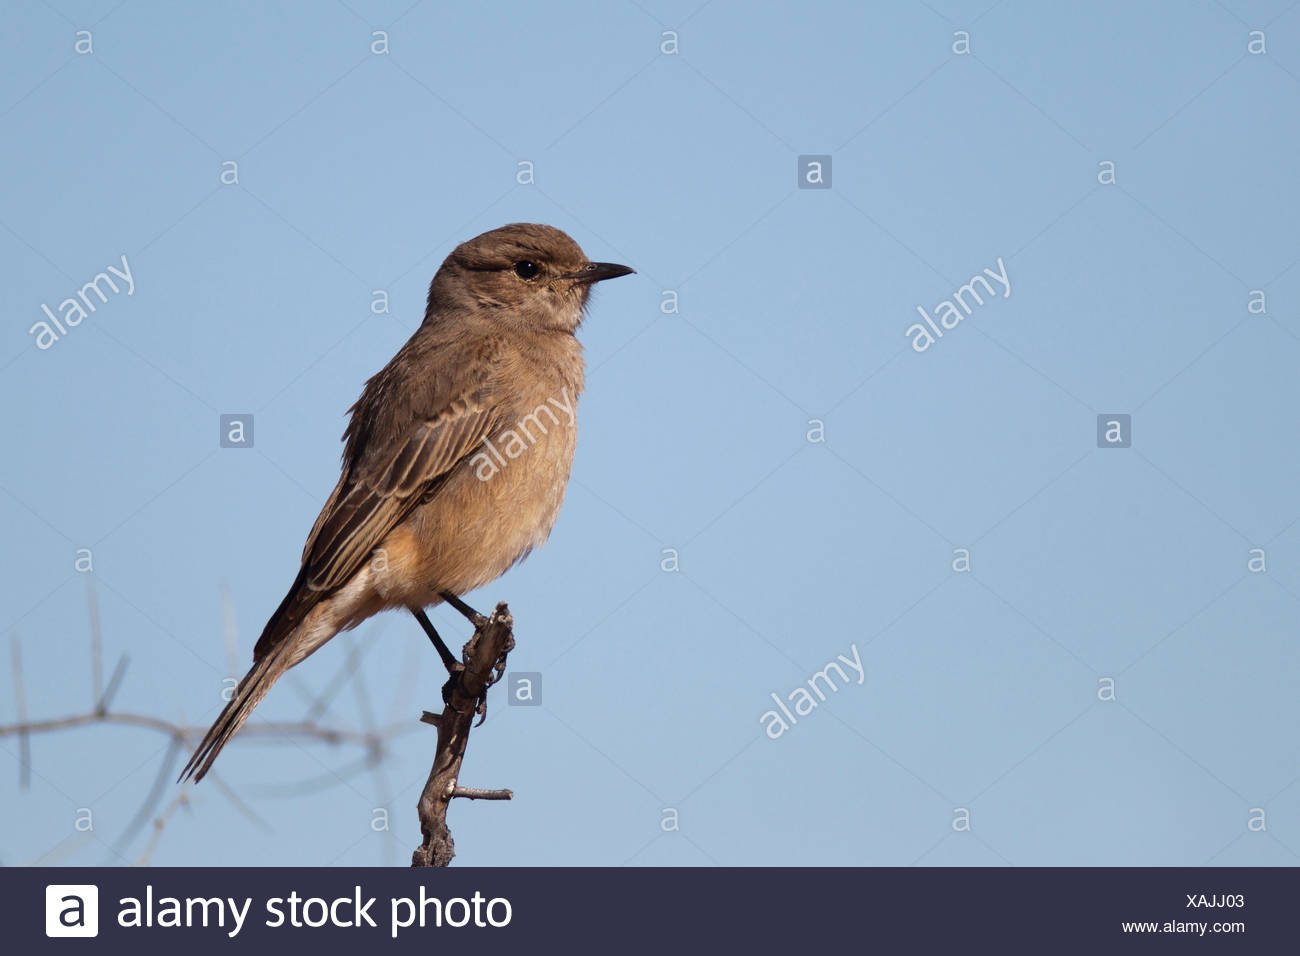 African brown flycatcher (Melaenornis infuscatus), sitting on a branch, South Africa, Kgalagadi Transfrontier National Park - Stock Image